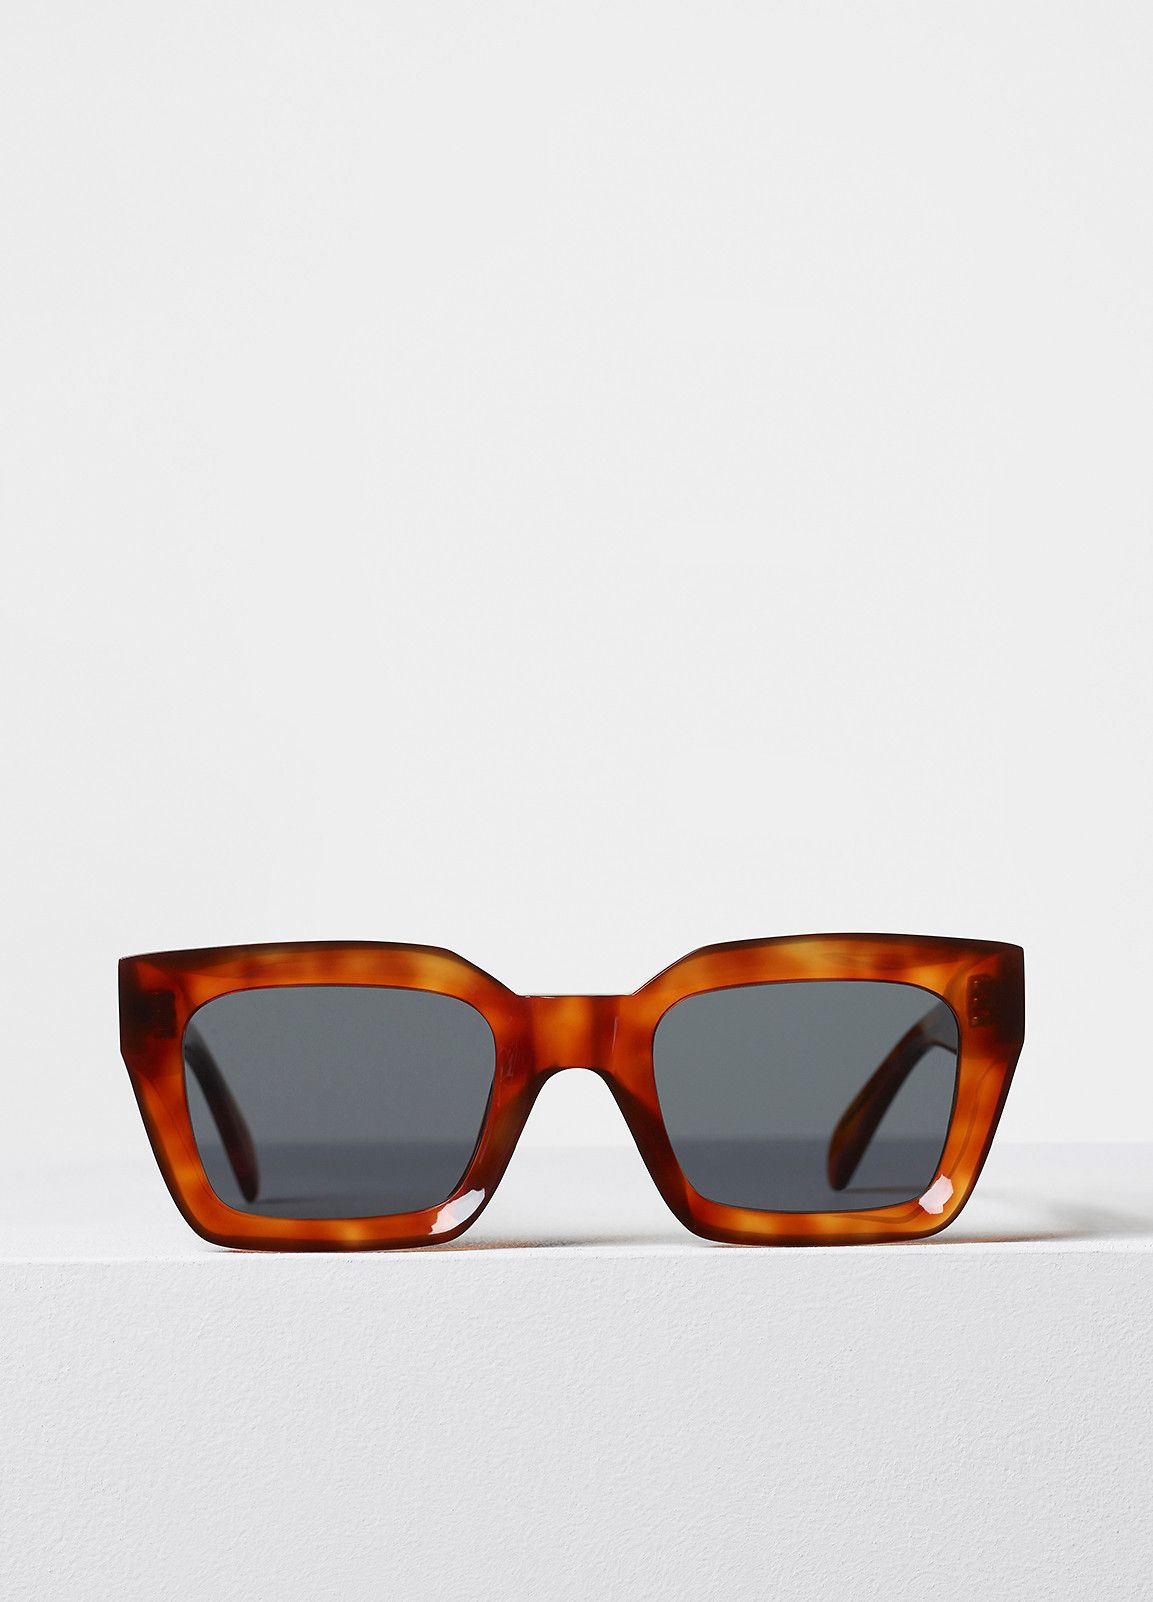 71b7e80b9b1 Céline - Kate Sunglasses